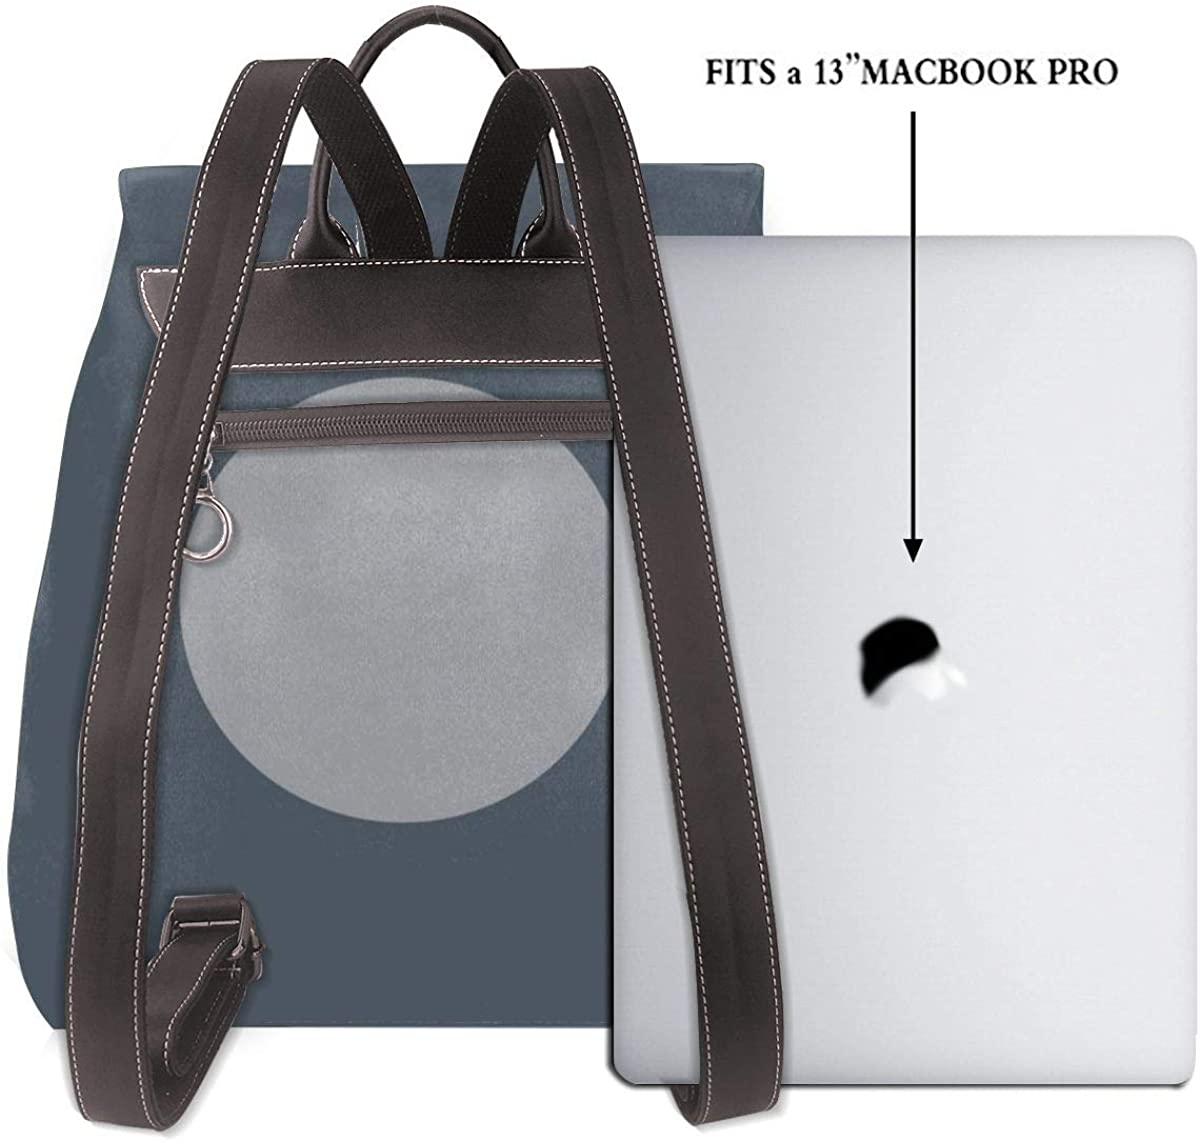 Notebook//Ultrabook//Acer//Asus//Dell Funny Briefcase Geometric Black and White Laptop Sleeve Waterproof Neoprene Diving Fabric Protective Briefcase Laptop Bag for IPad